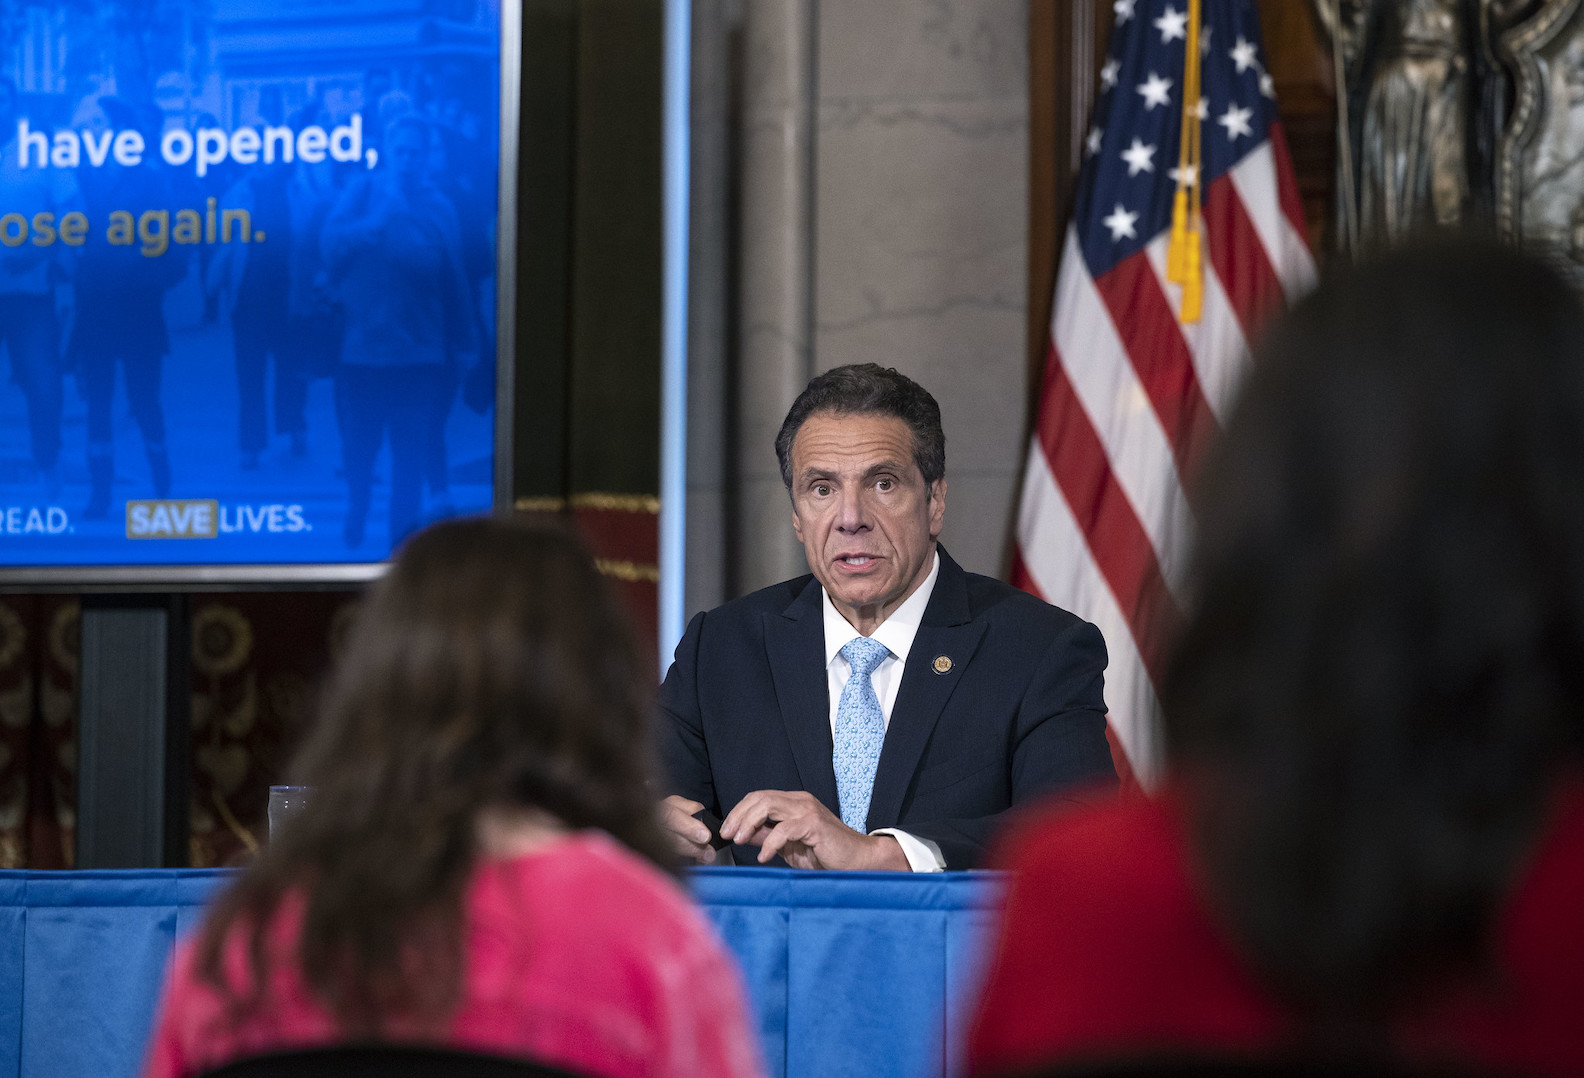 Gov. Andrew Cuomo provides a coronavirus update during a press conference Friday in the Red Room at the State Capitol. (Photo by Mike Groll/Office of Gov. Andrew M. Cuomo)